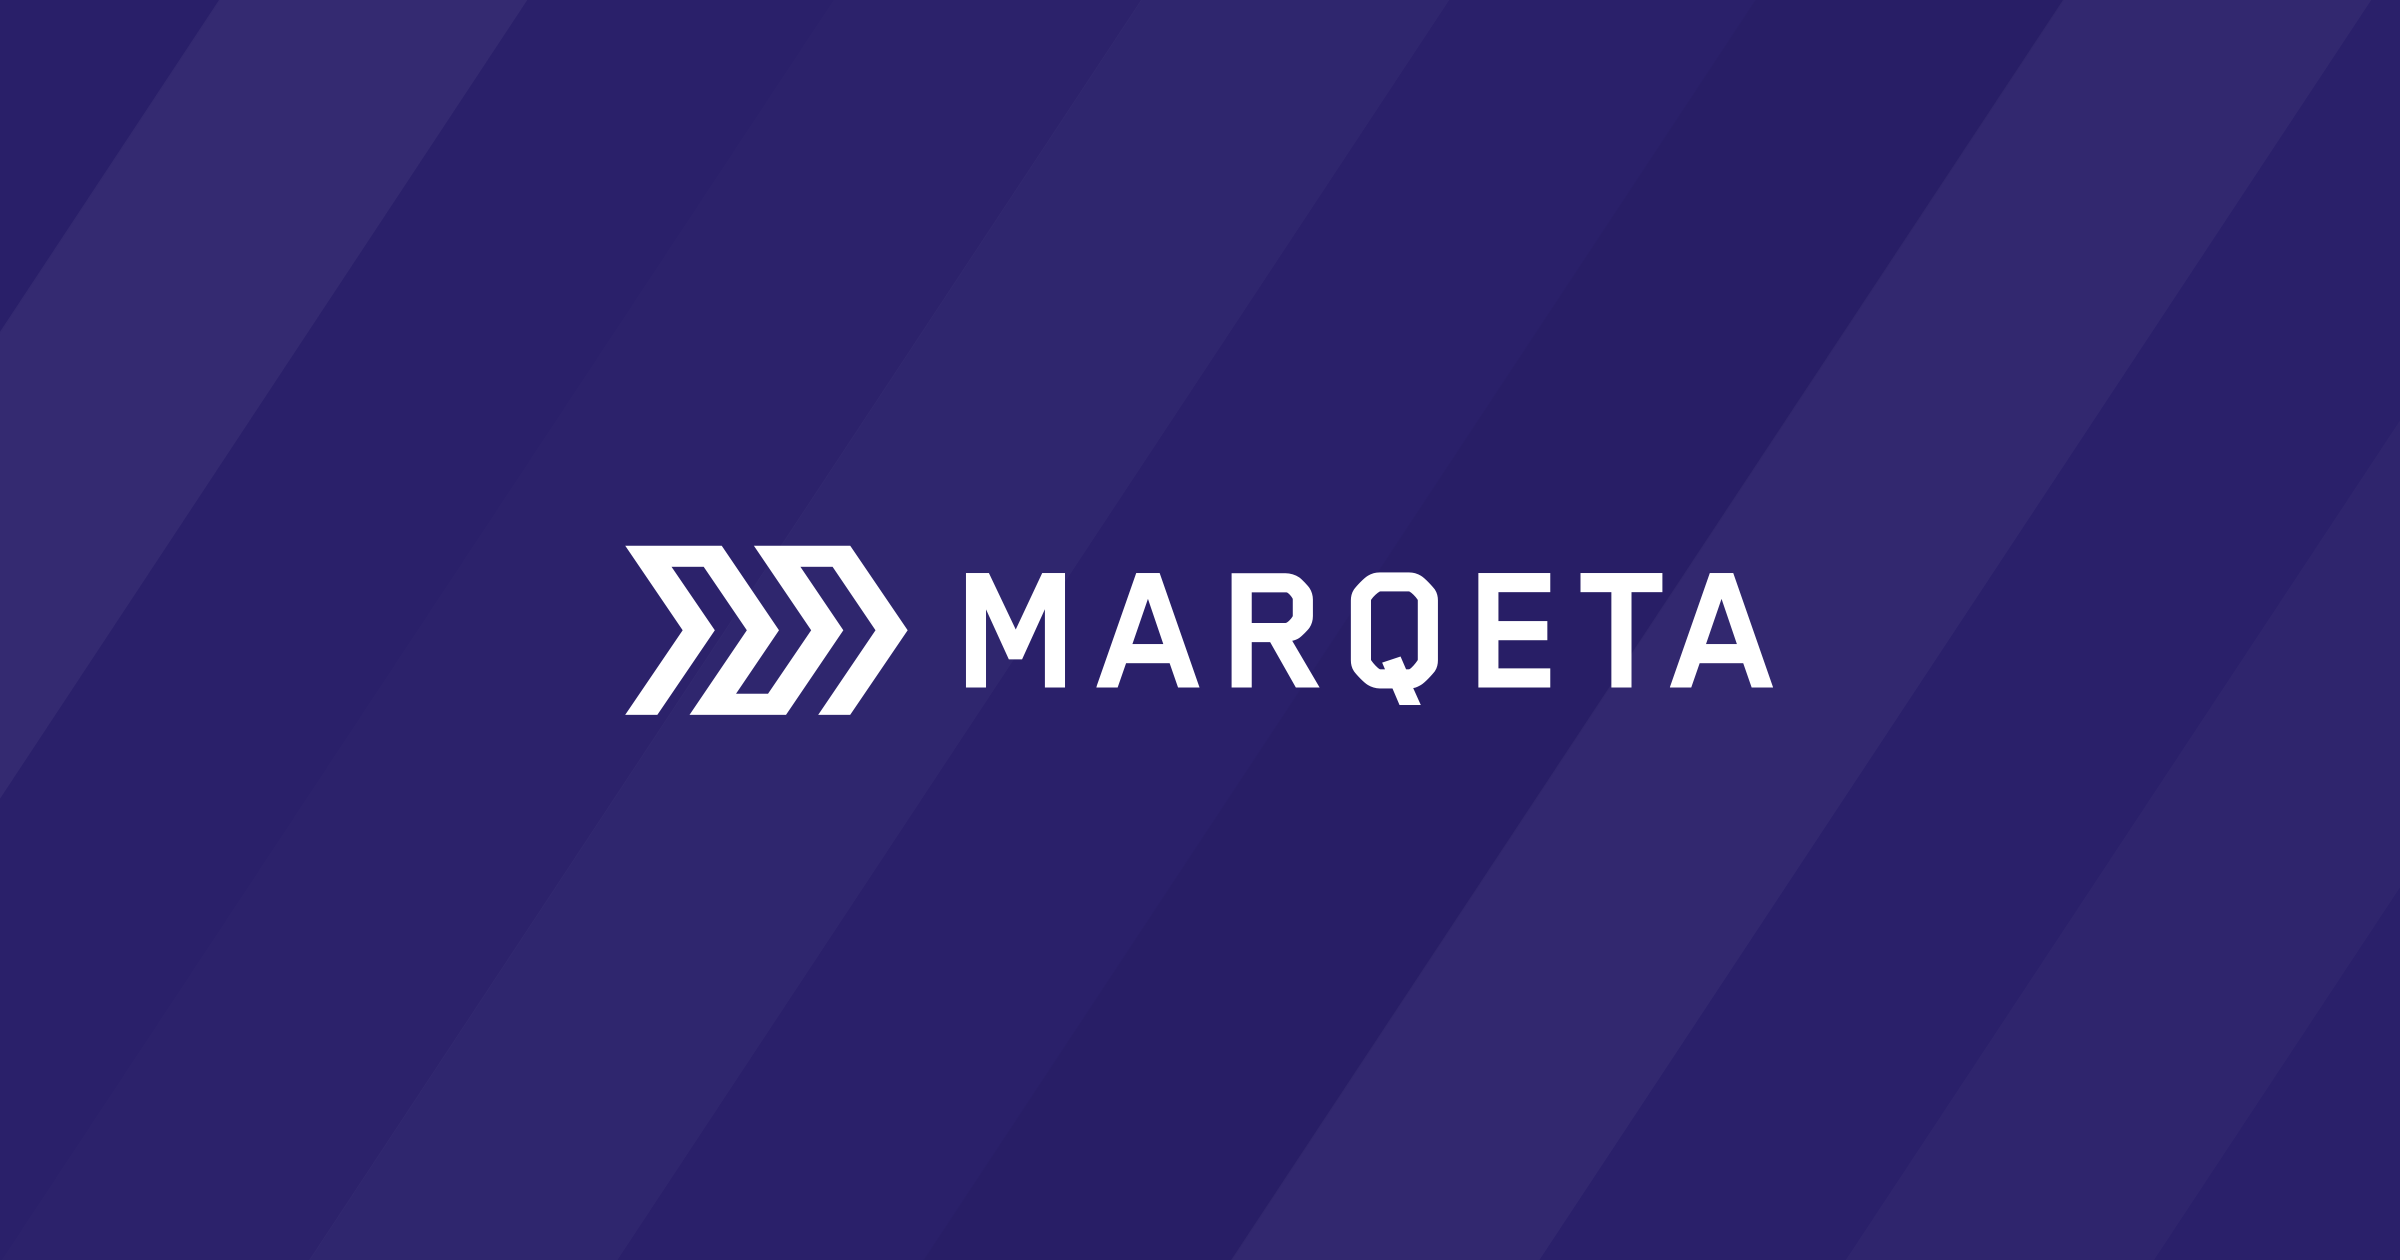 Marqeta | Modern Card Issuing and Payment Solutions